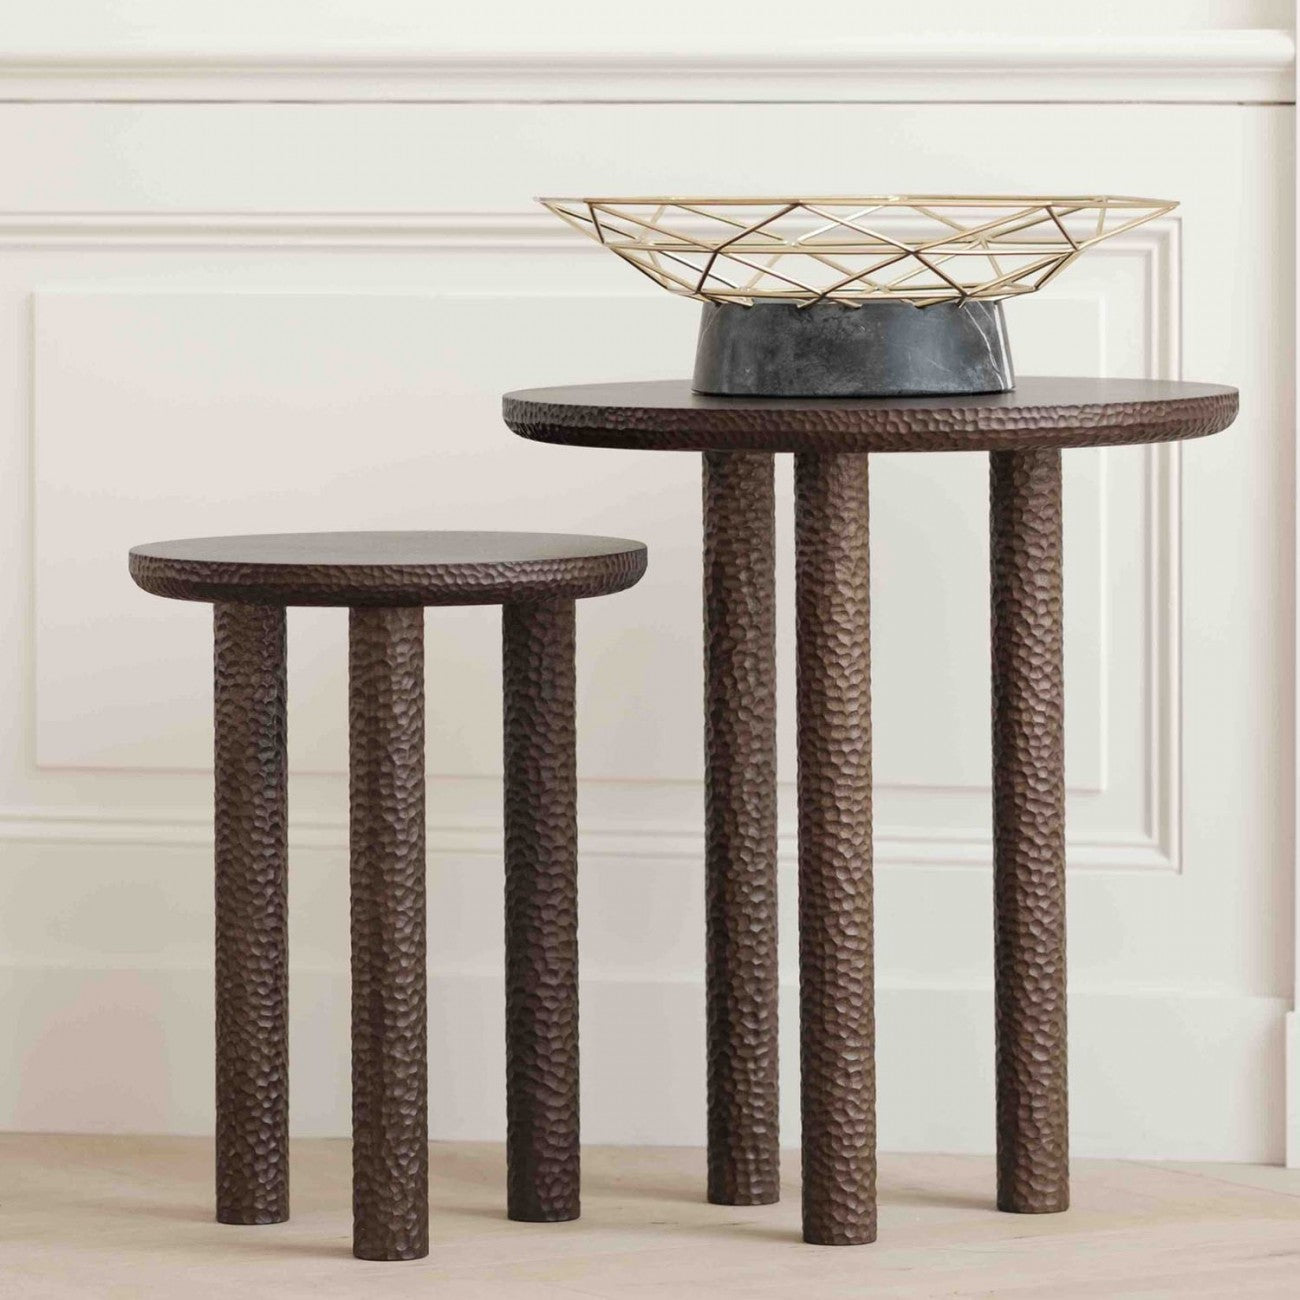 Rosae Side Tables Guola/Figuera Designer Furniture Sku: 765-230-10024